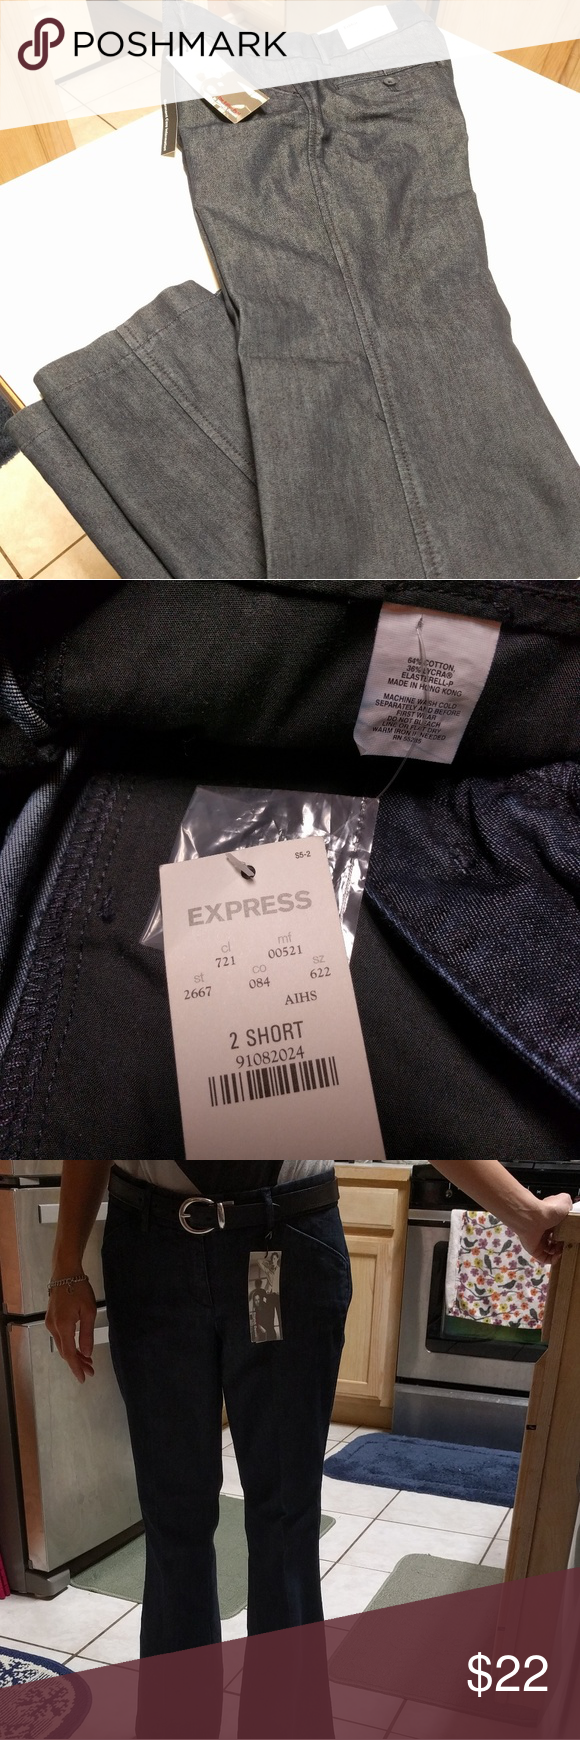 NWT **EXPRESS** Slack Pants Low Rise Brand new with tag, size 2 Short, Paid $69.50, on sale now $41.00. It's very good deal with these pants. Offers are welcome. Express Pants Boot Cut & Flare